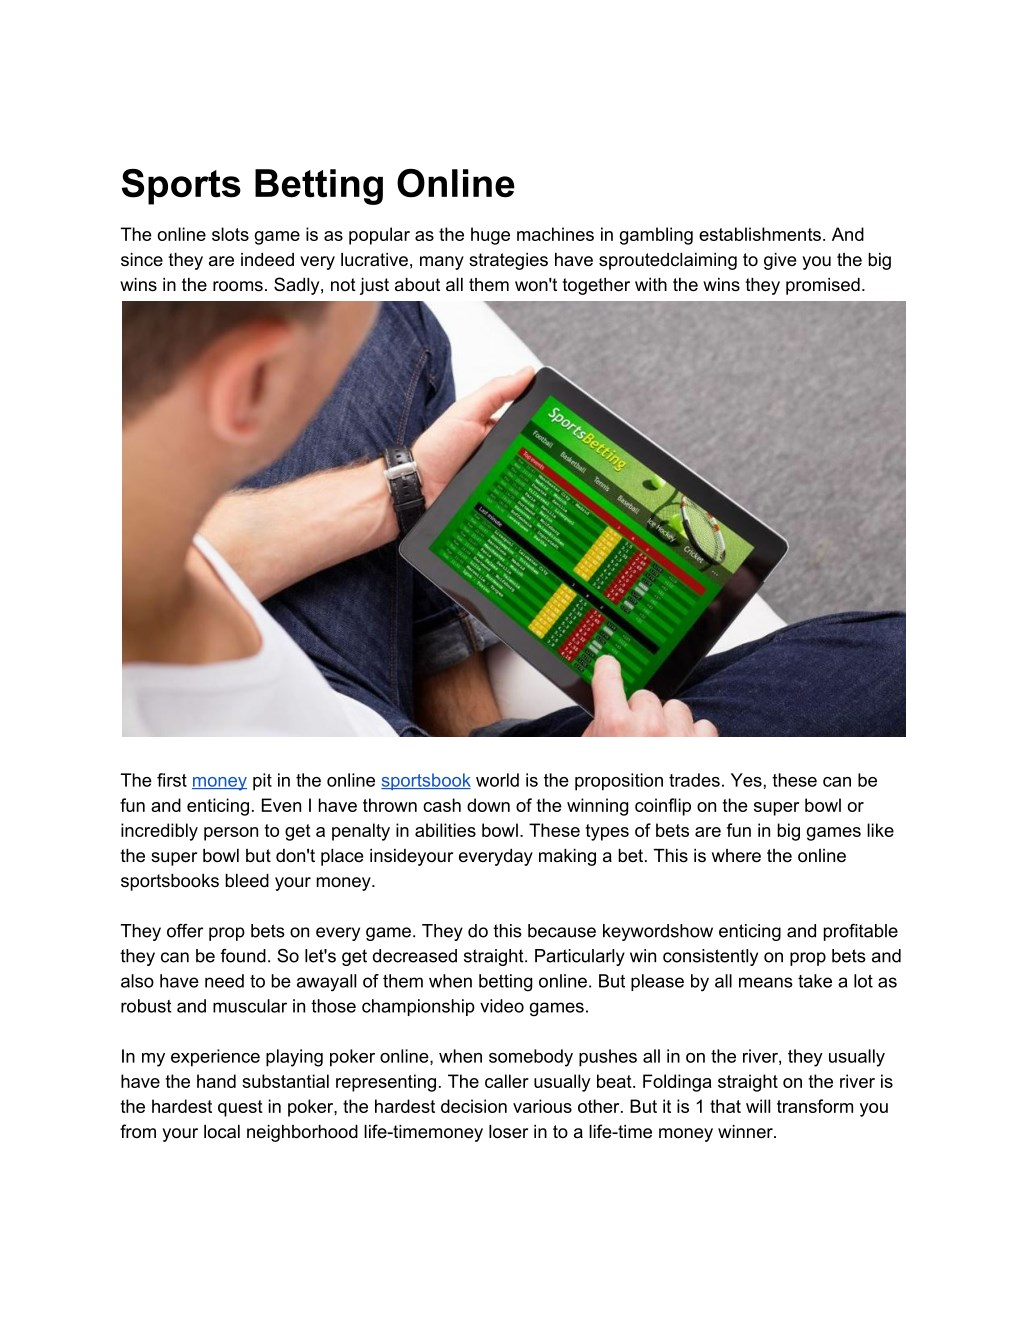 Your entire life is online betting cara pengolahan umbi bitcoins